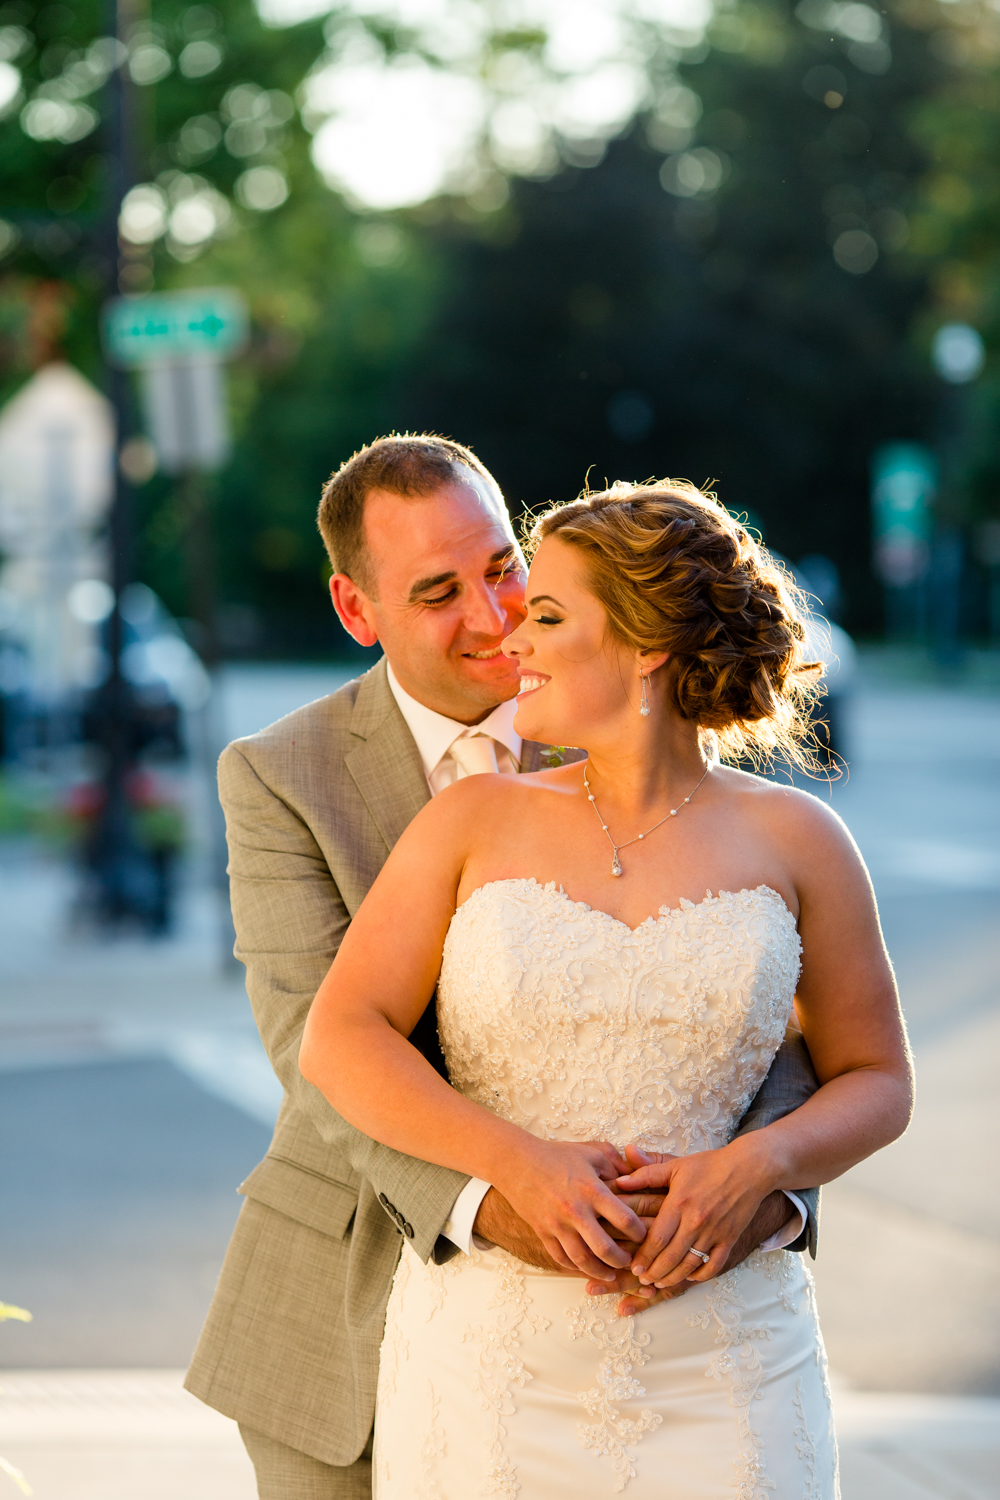 Sunset photo of groom holding bride around the waist. Bride is wearing a lace wedding gown.